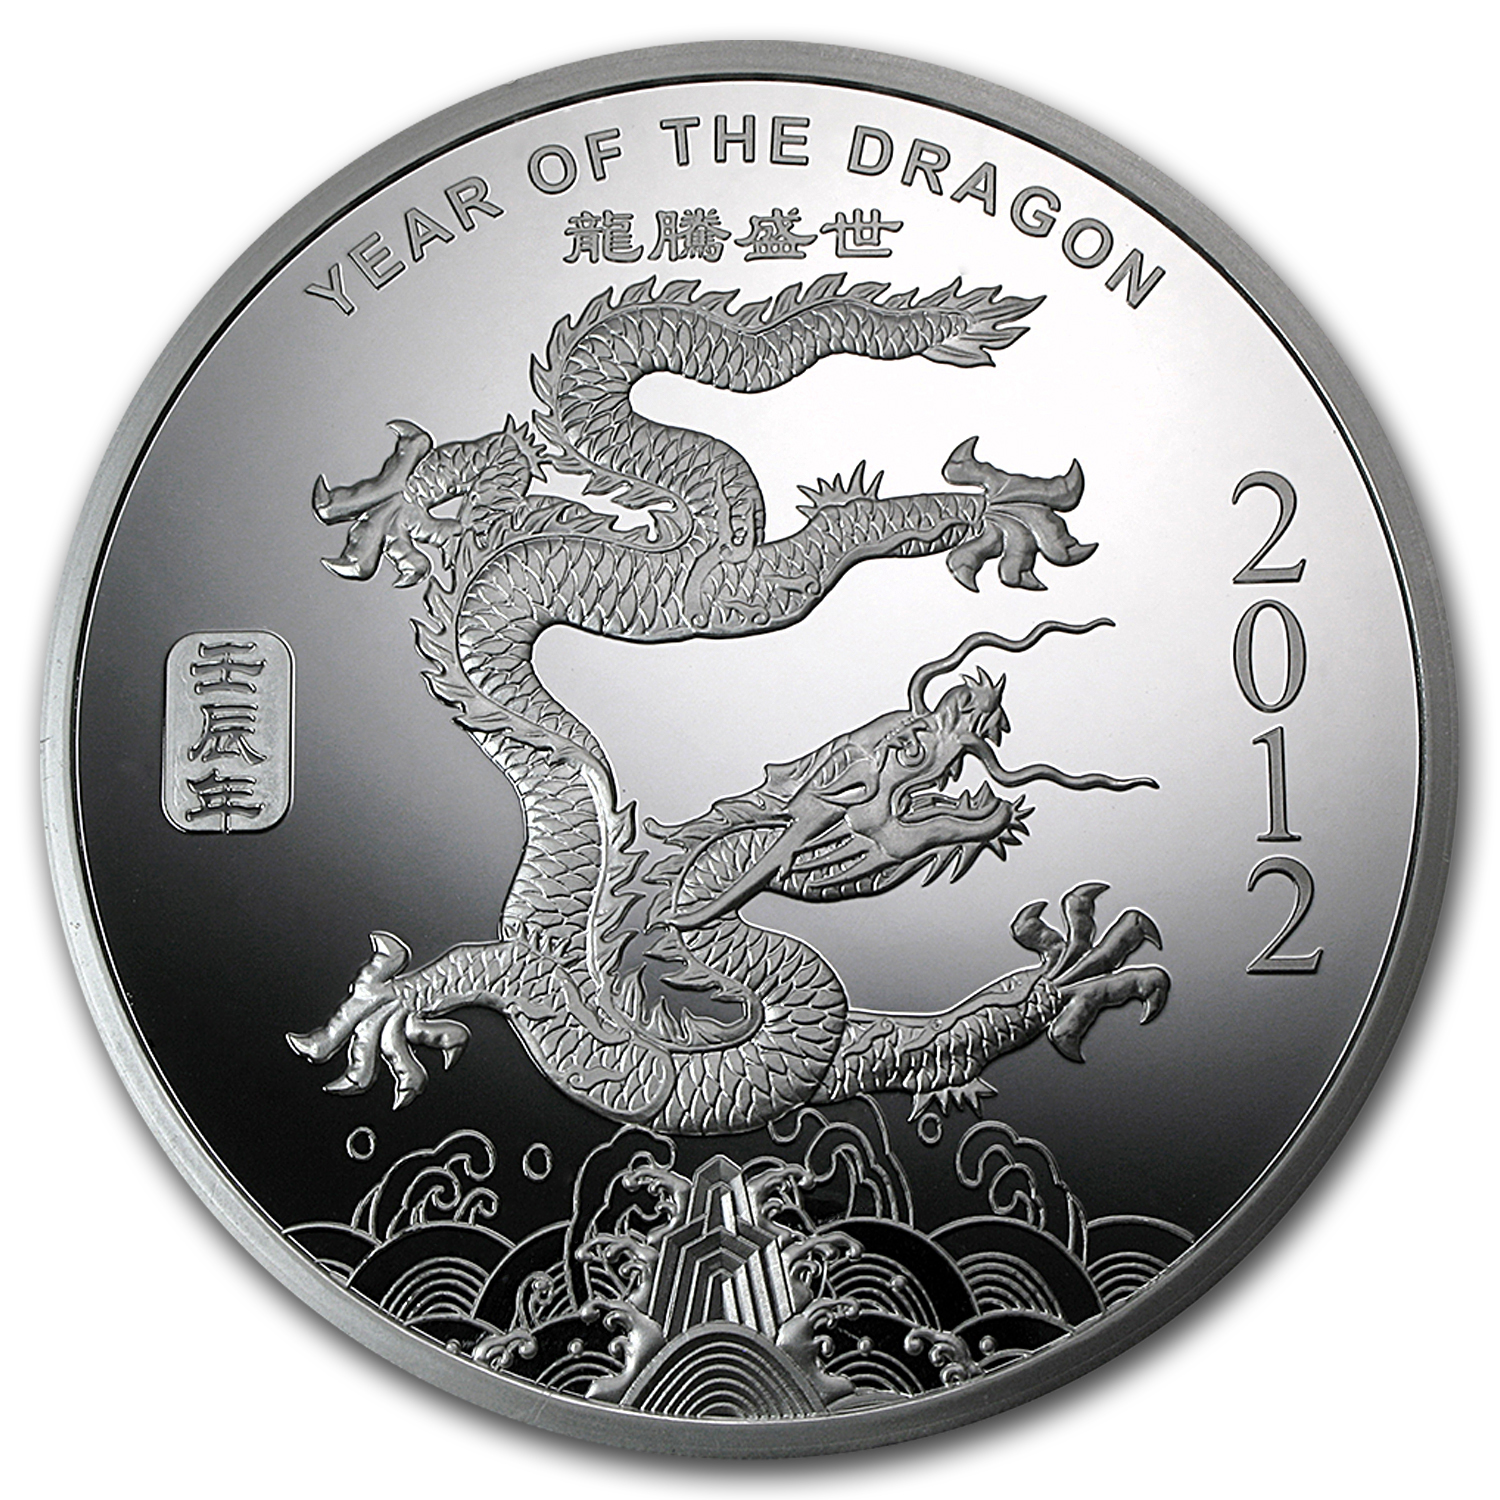 1/2 oz Silver Rounds - APMEX (2012 Year of the Dragon)